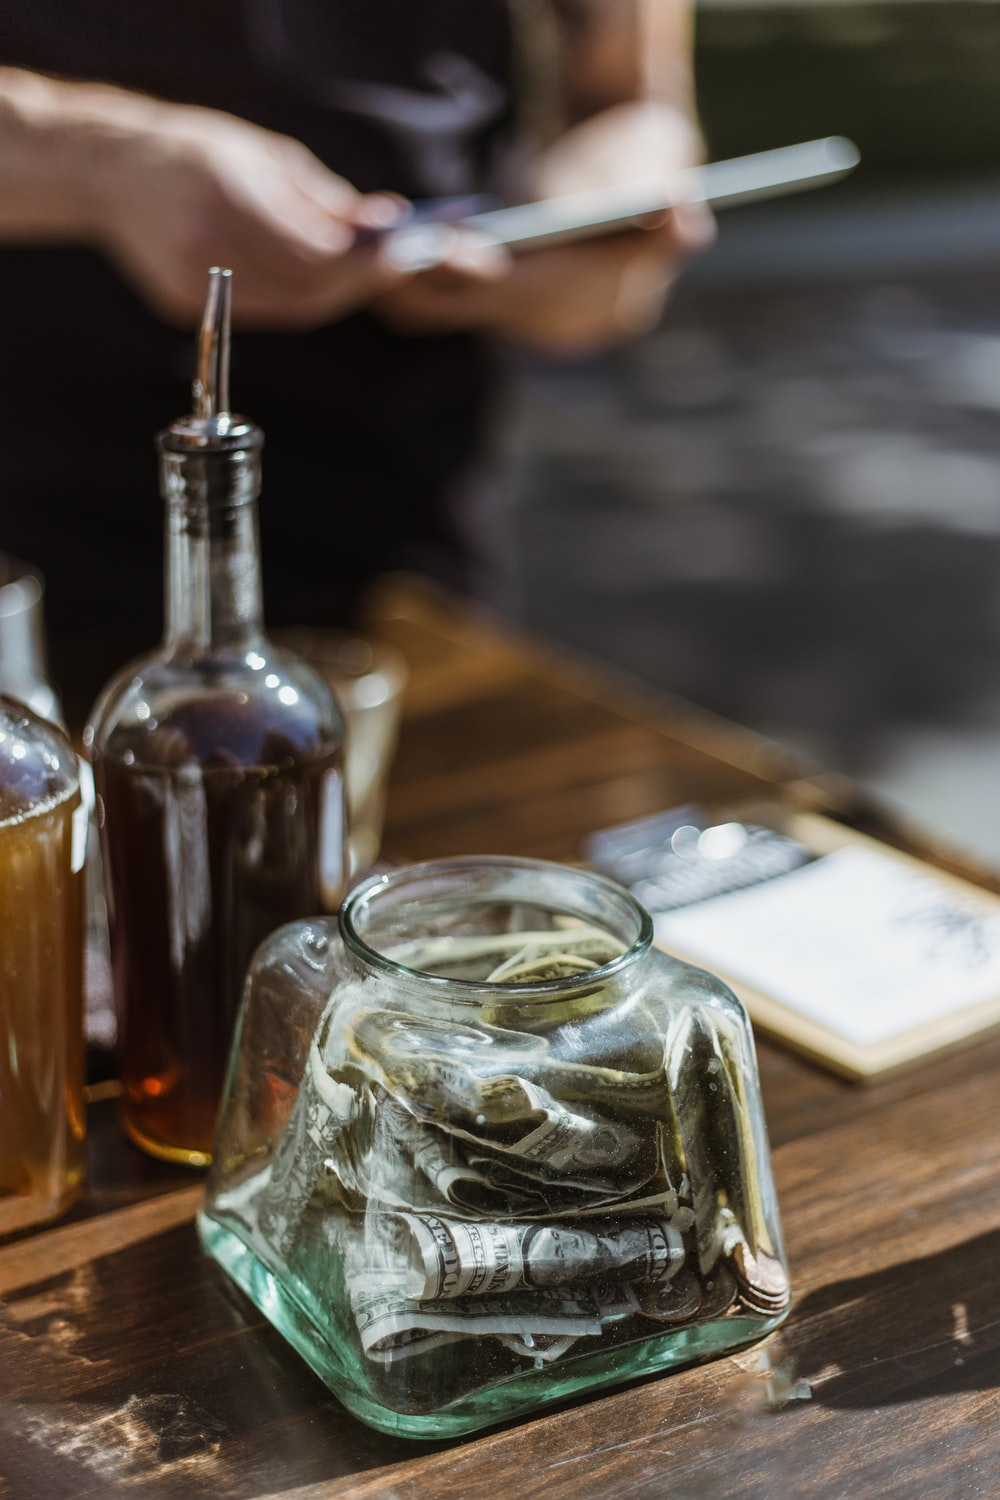 banknotes in clear glass container on wooden surface